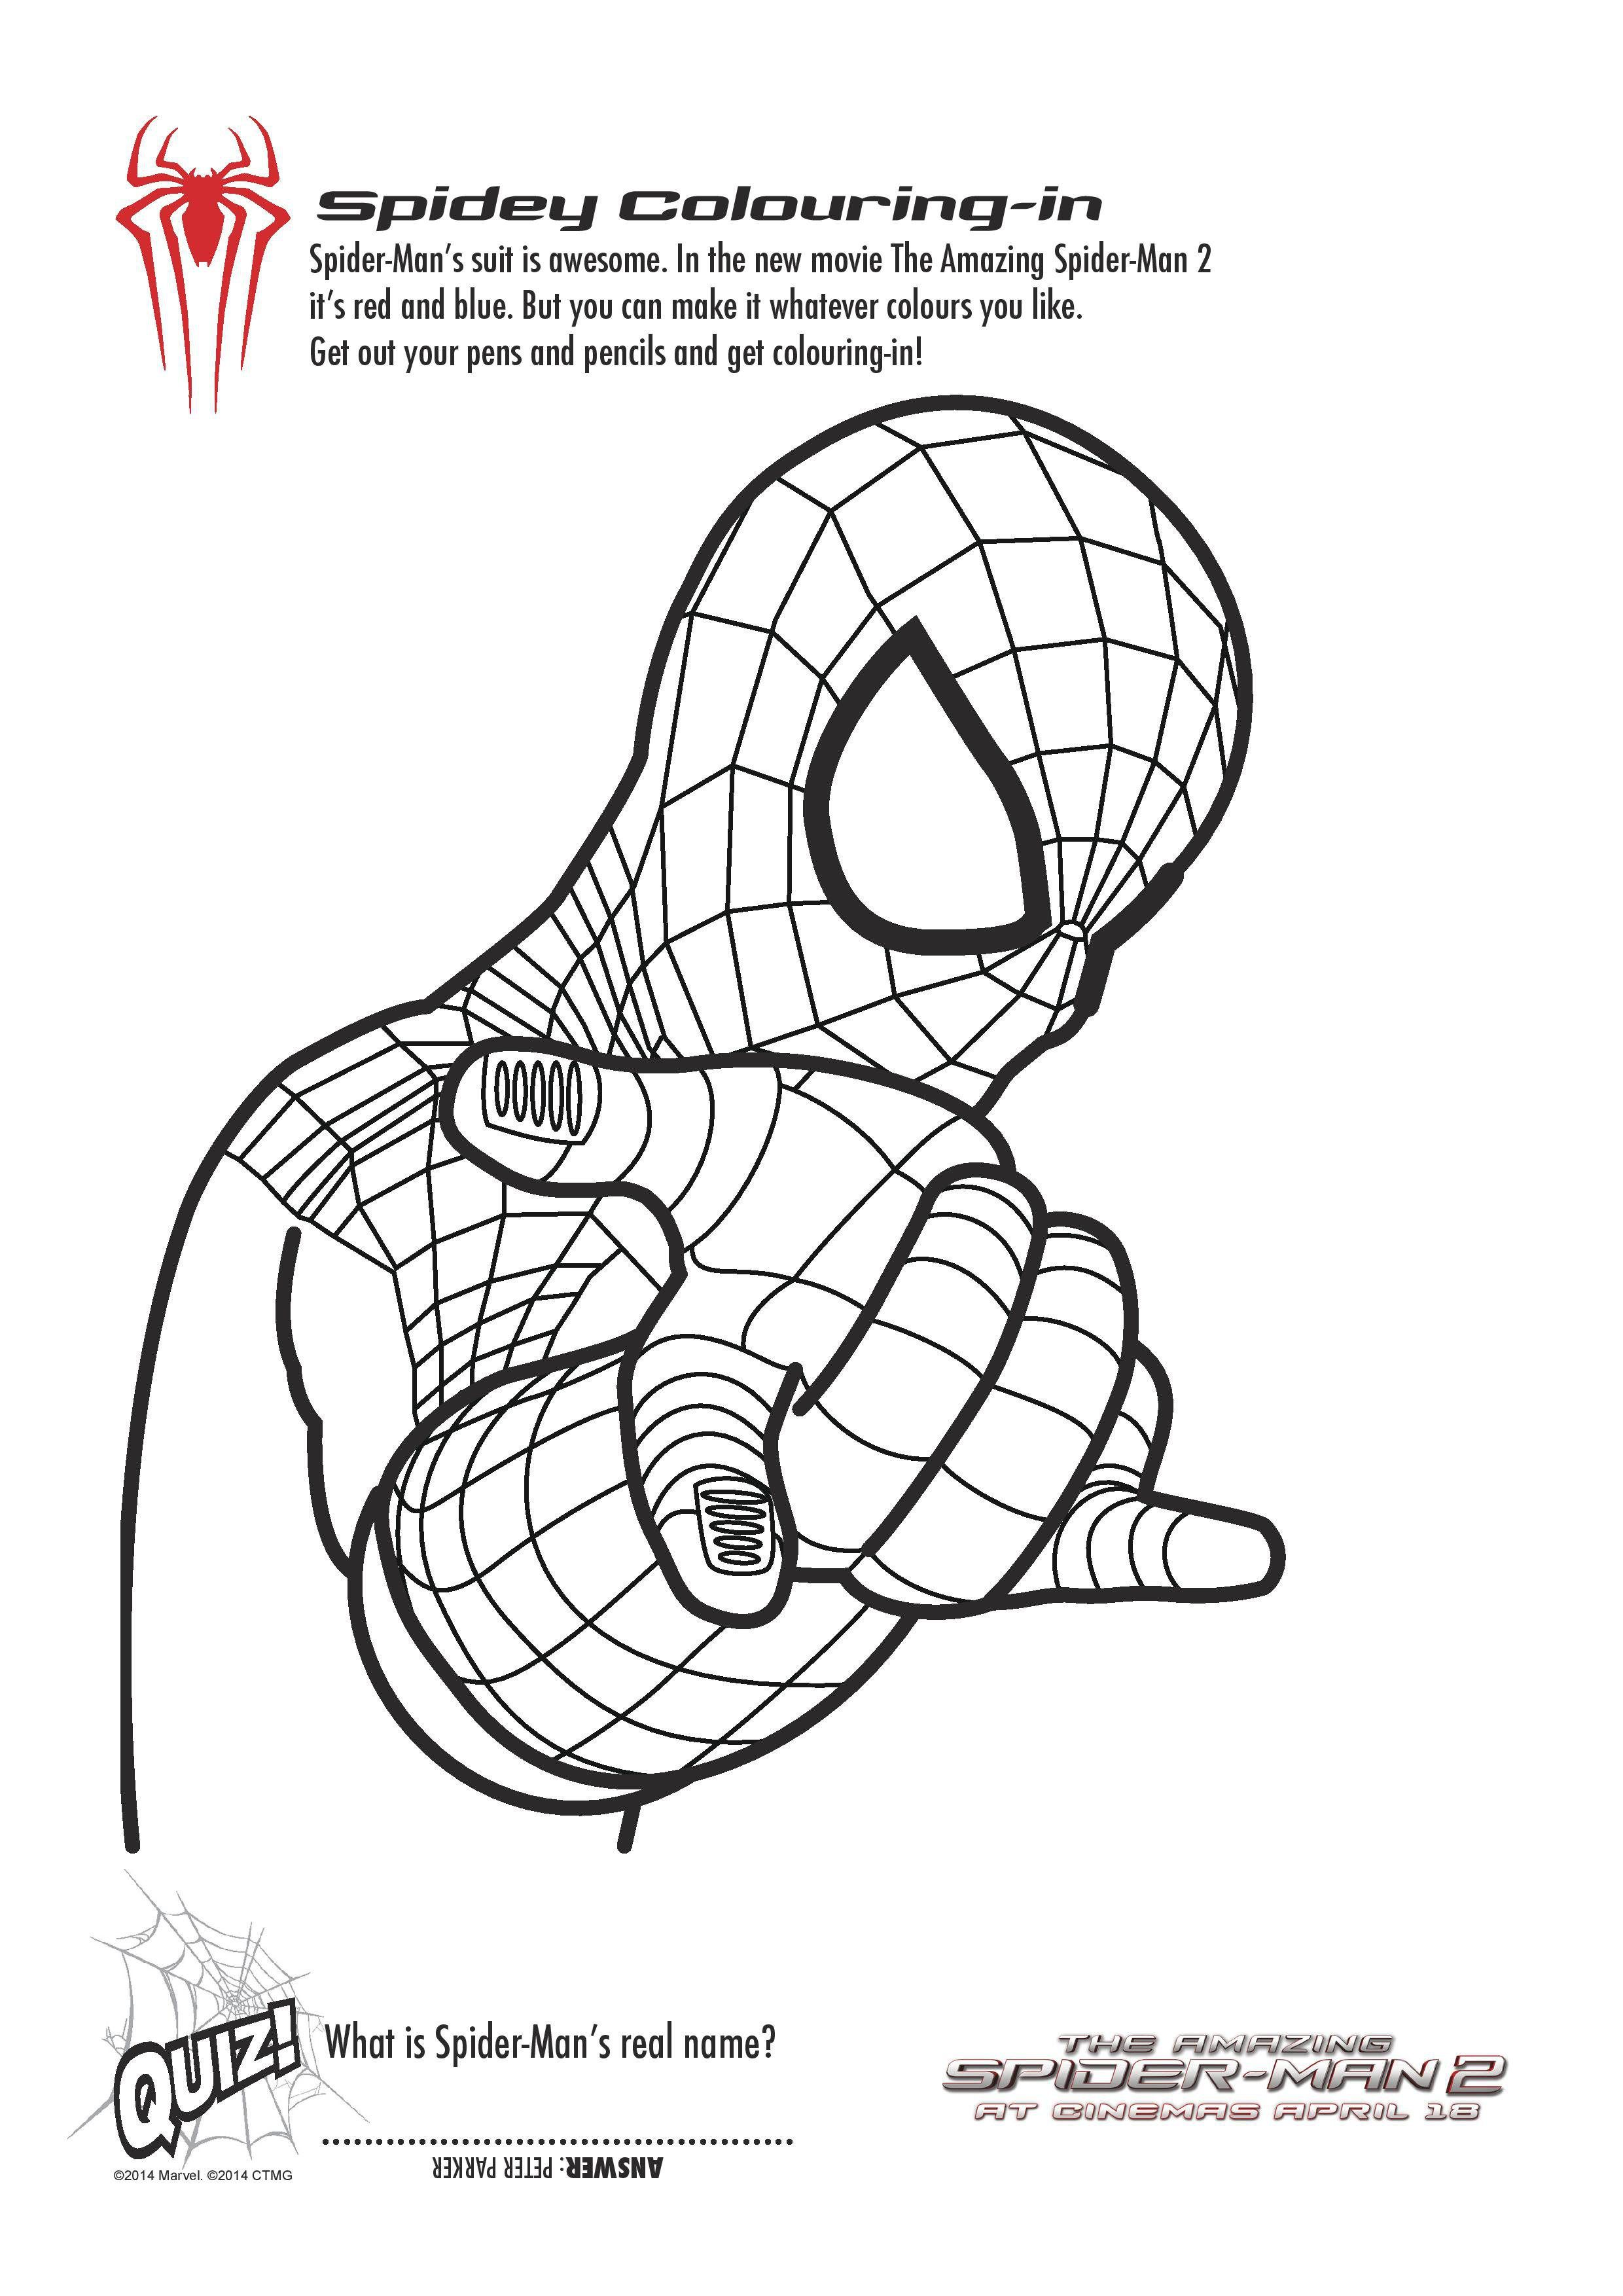 Free Printable Spiderman Colouring Pages and Activity Sheets ...